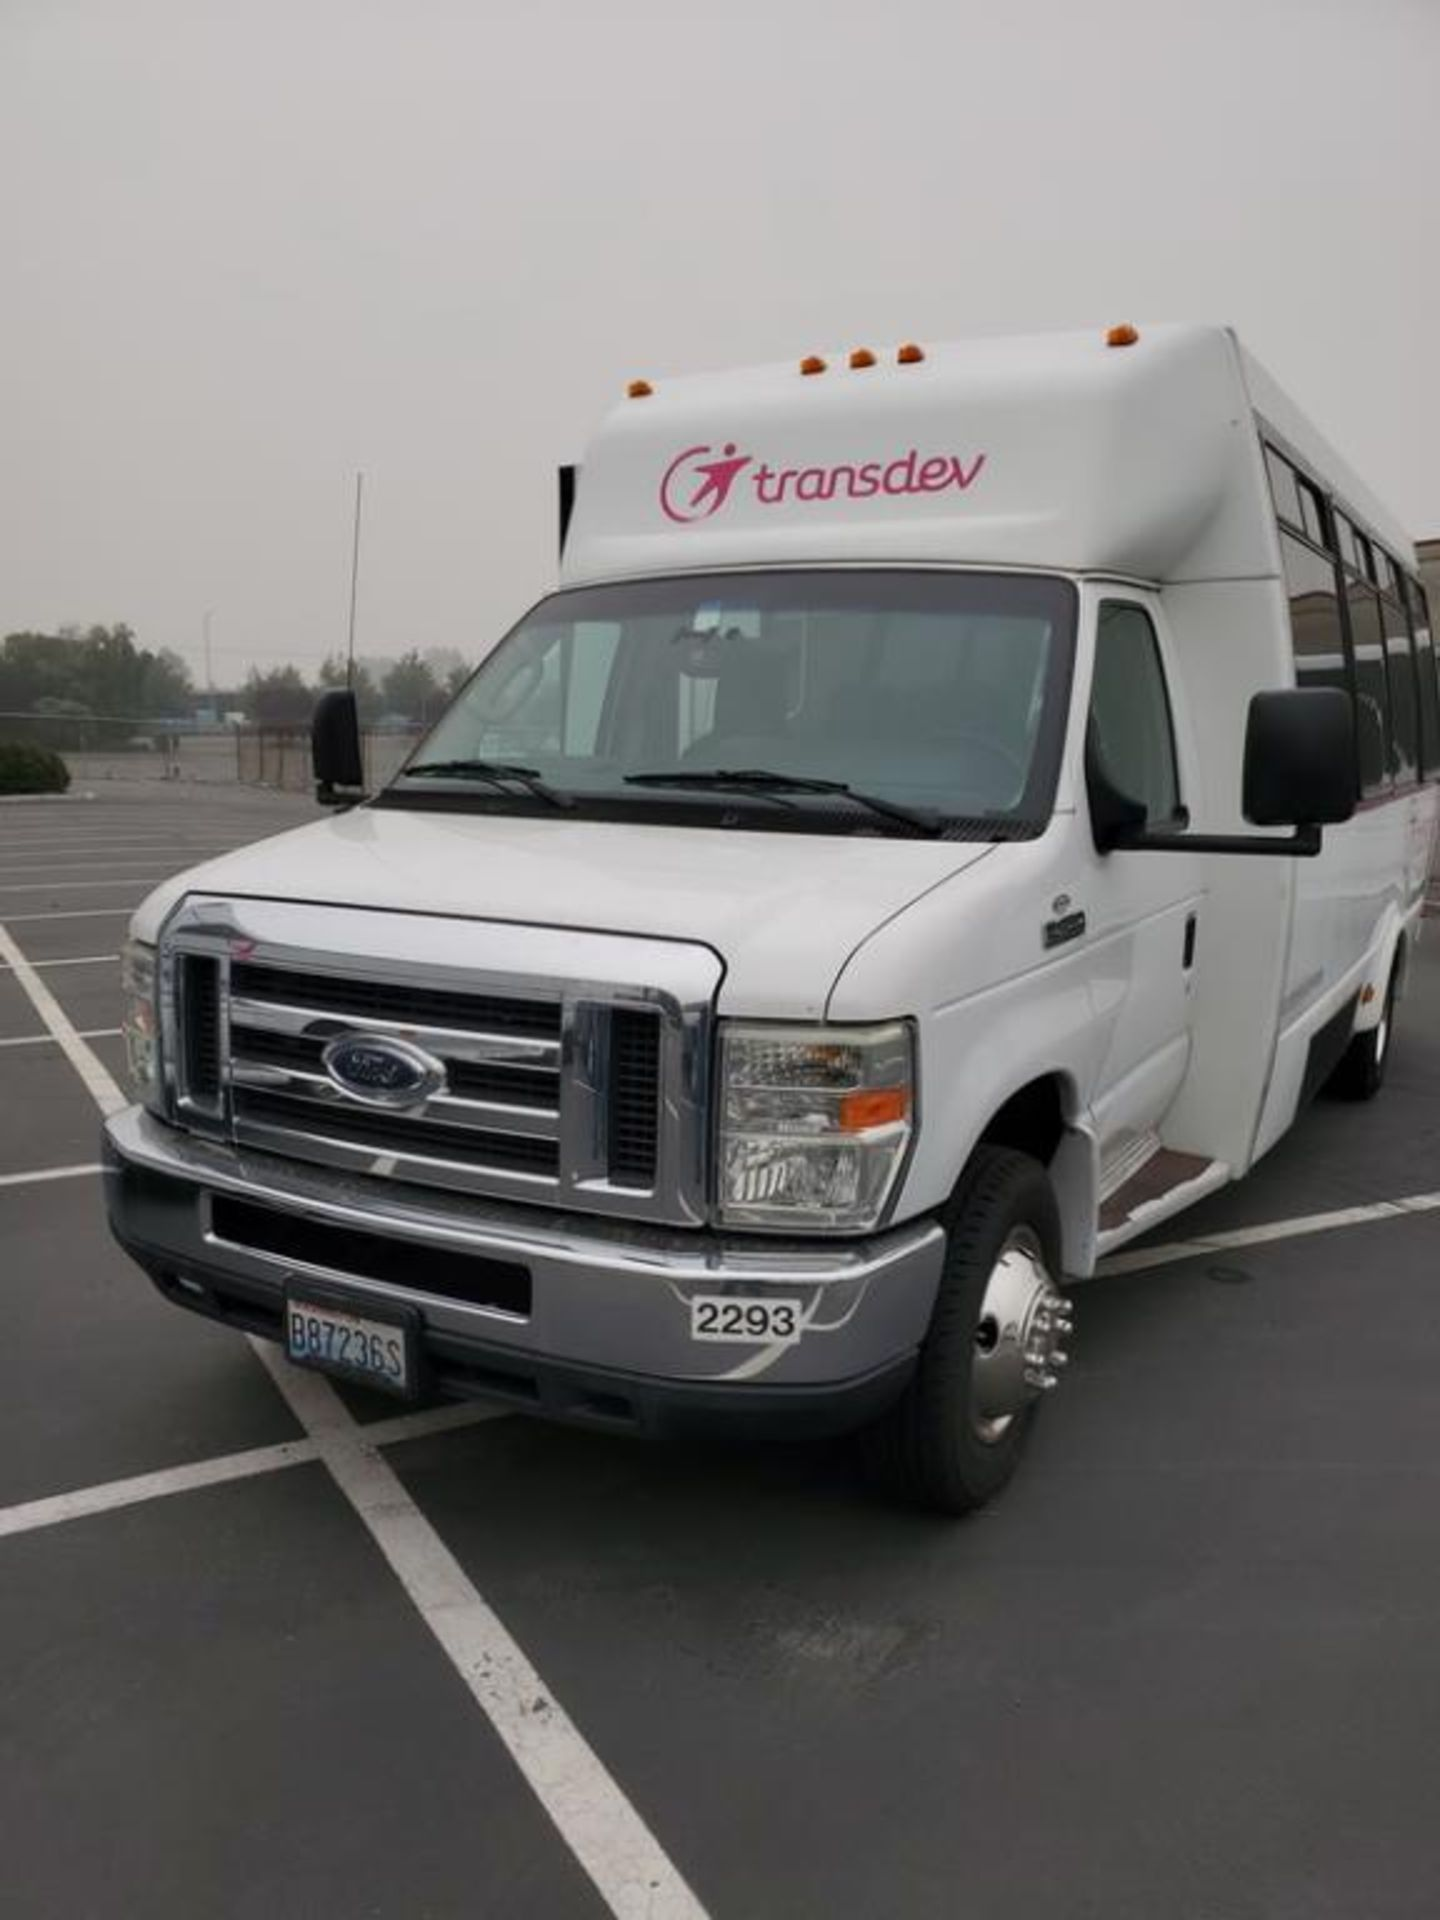 Lot 206 - FORD E450 Starcraft Shuttle Bus